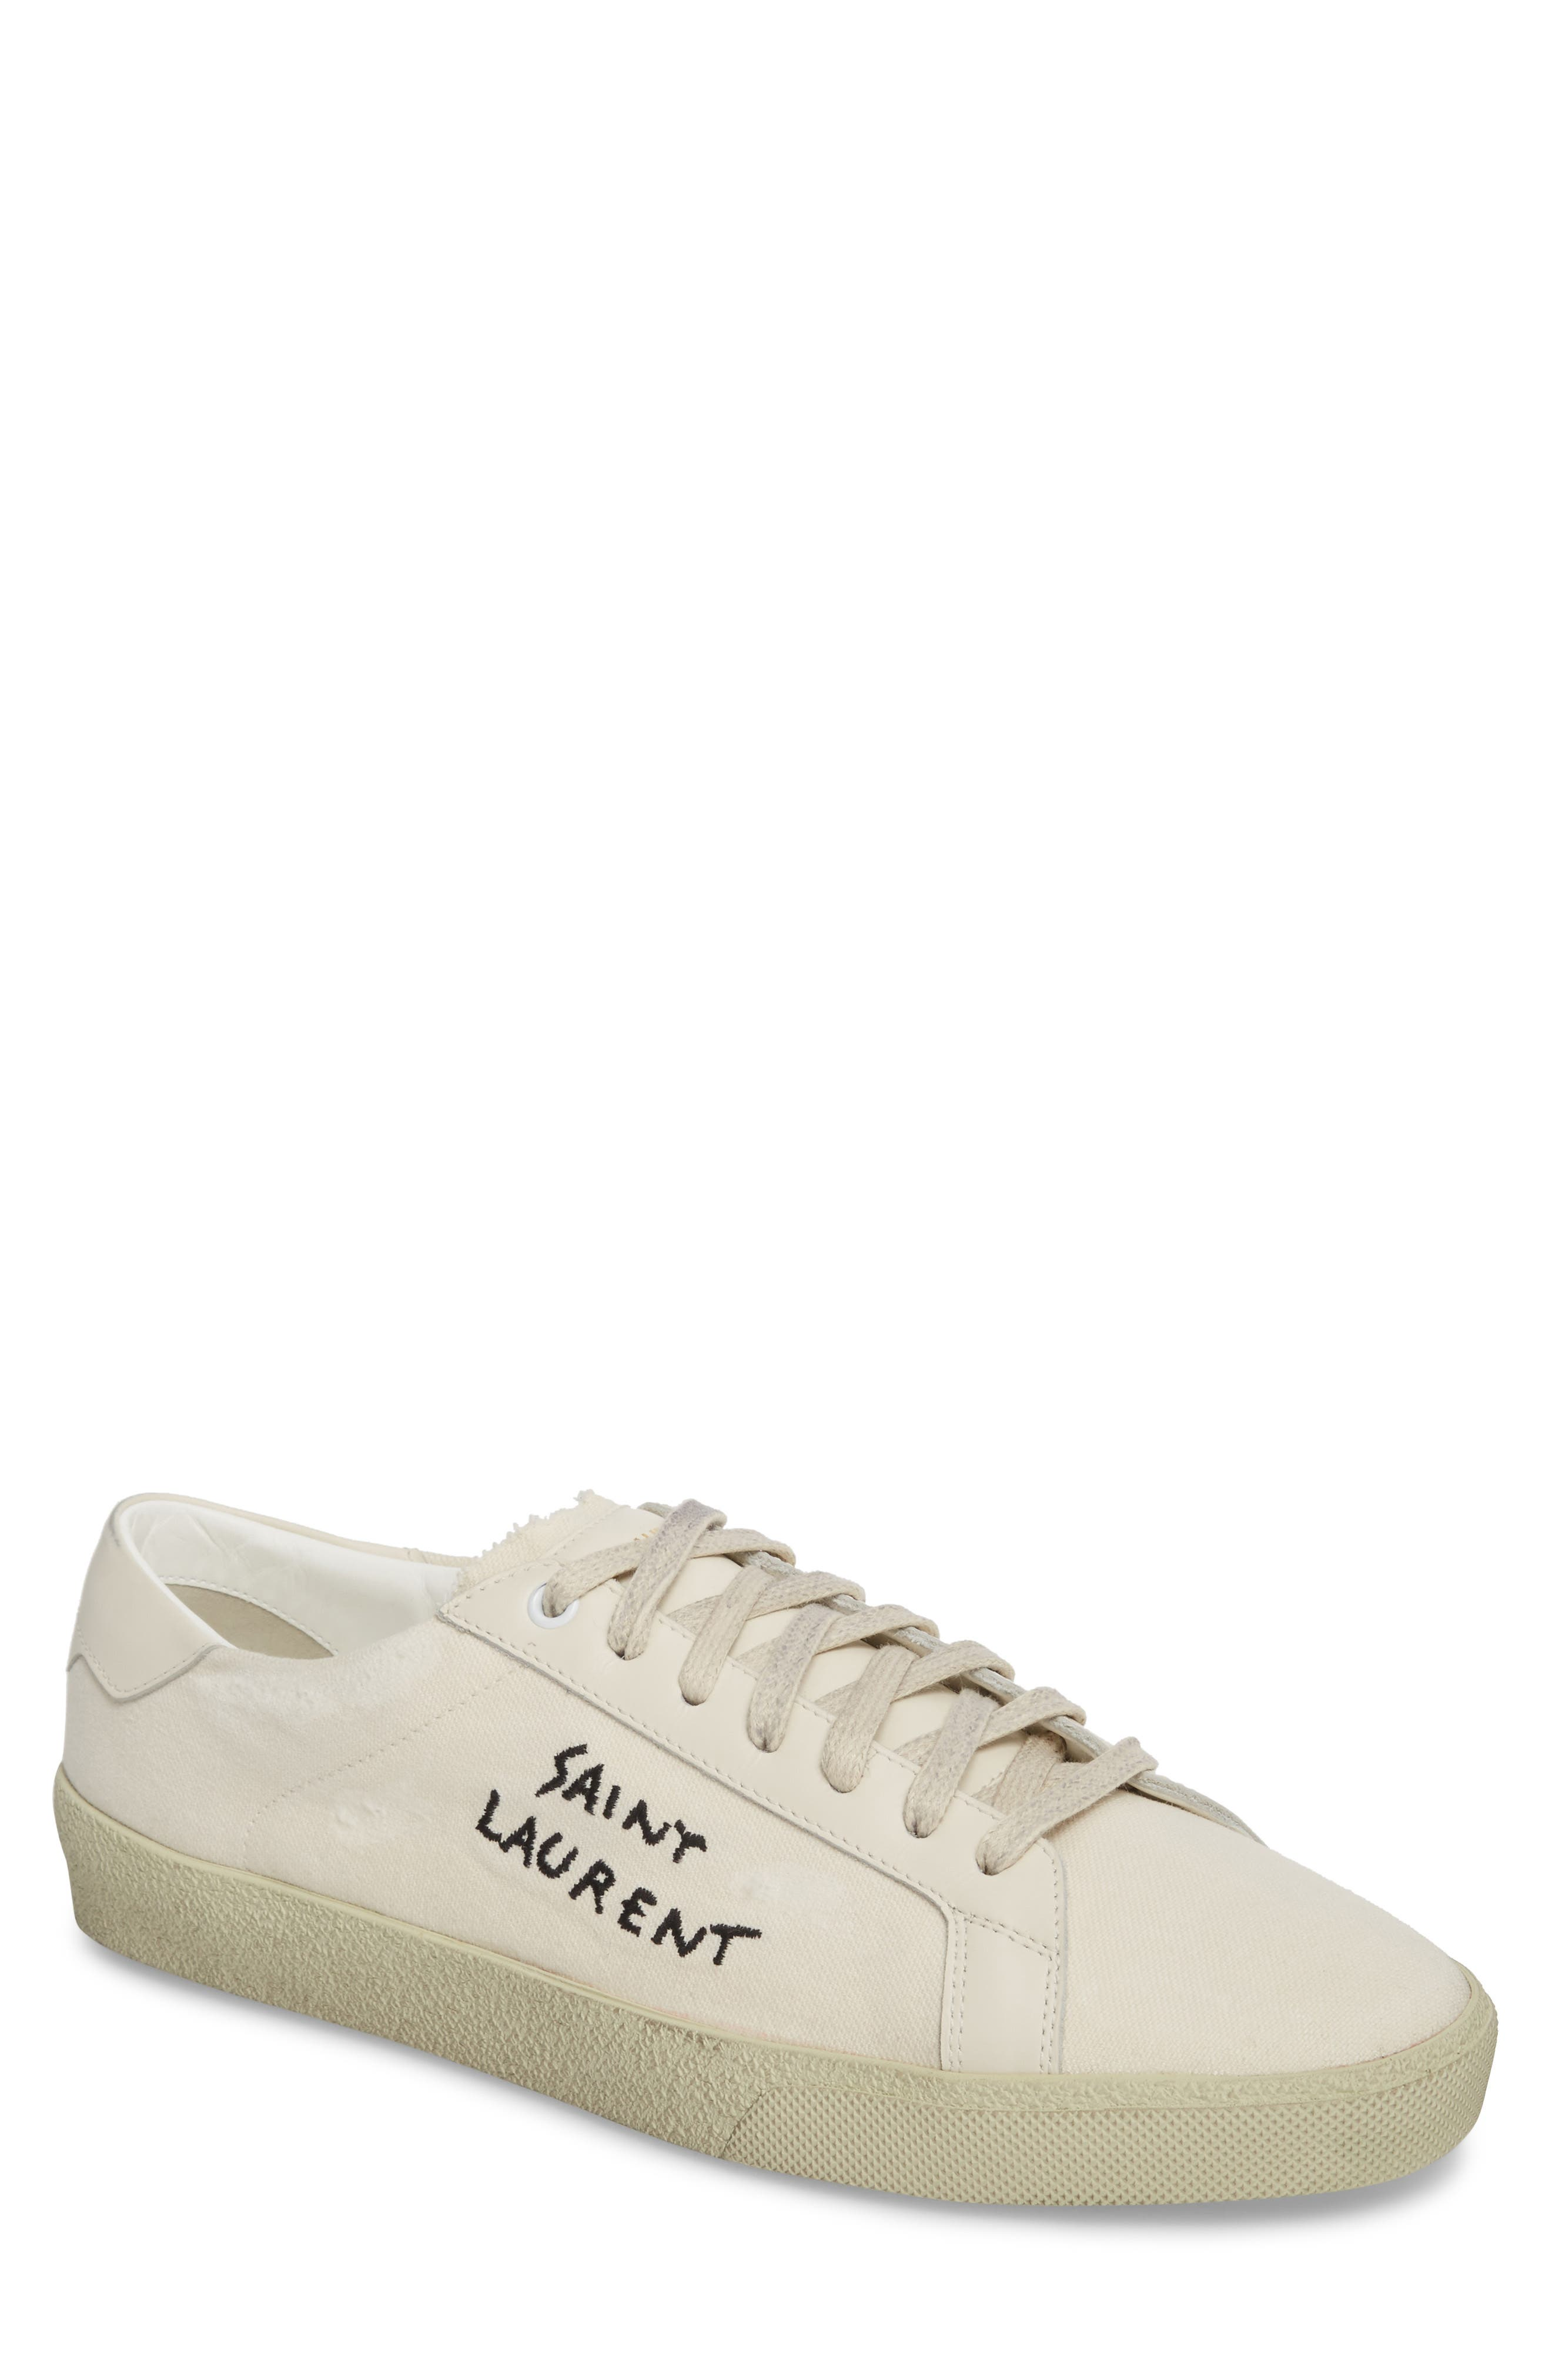 Embroidered Low Top Sneaker,                         Main,                         color, Pesca